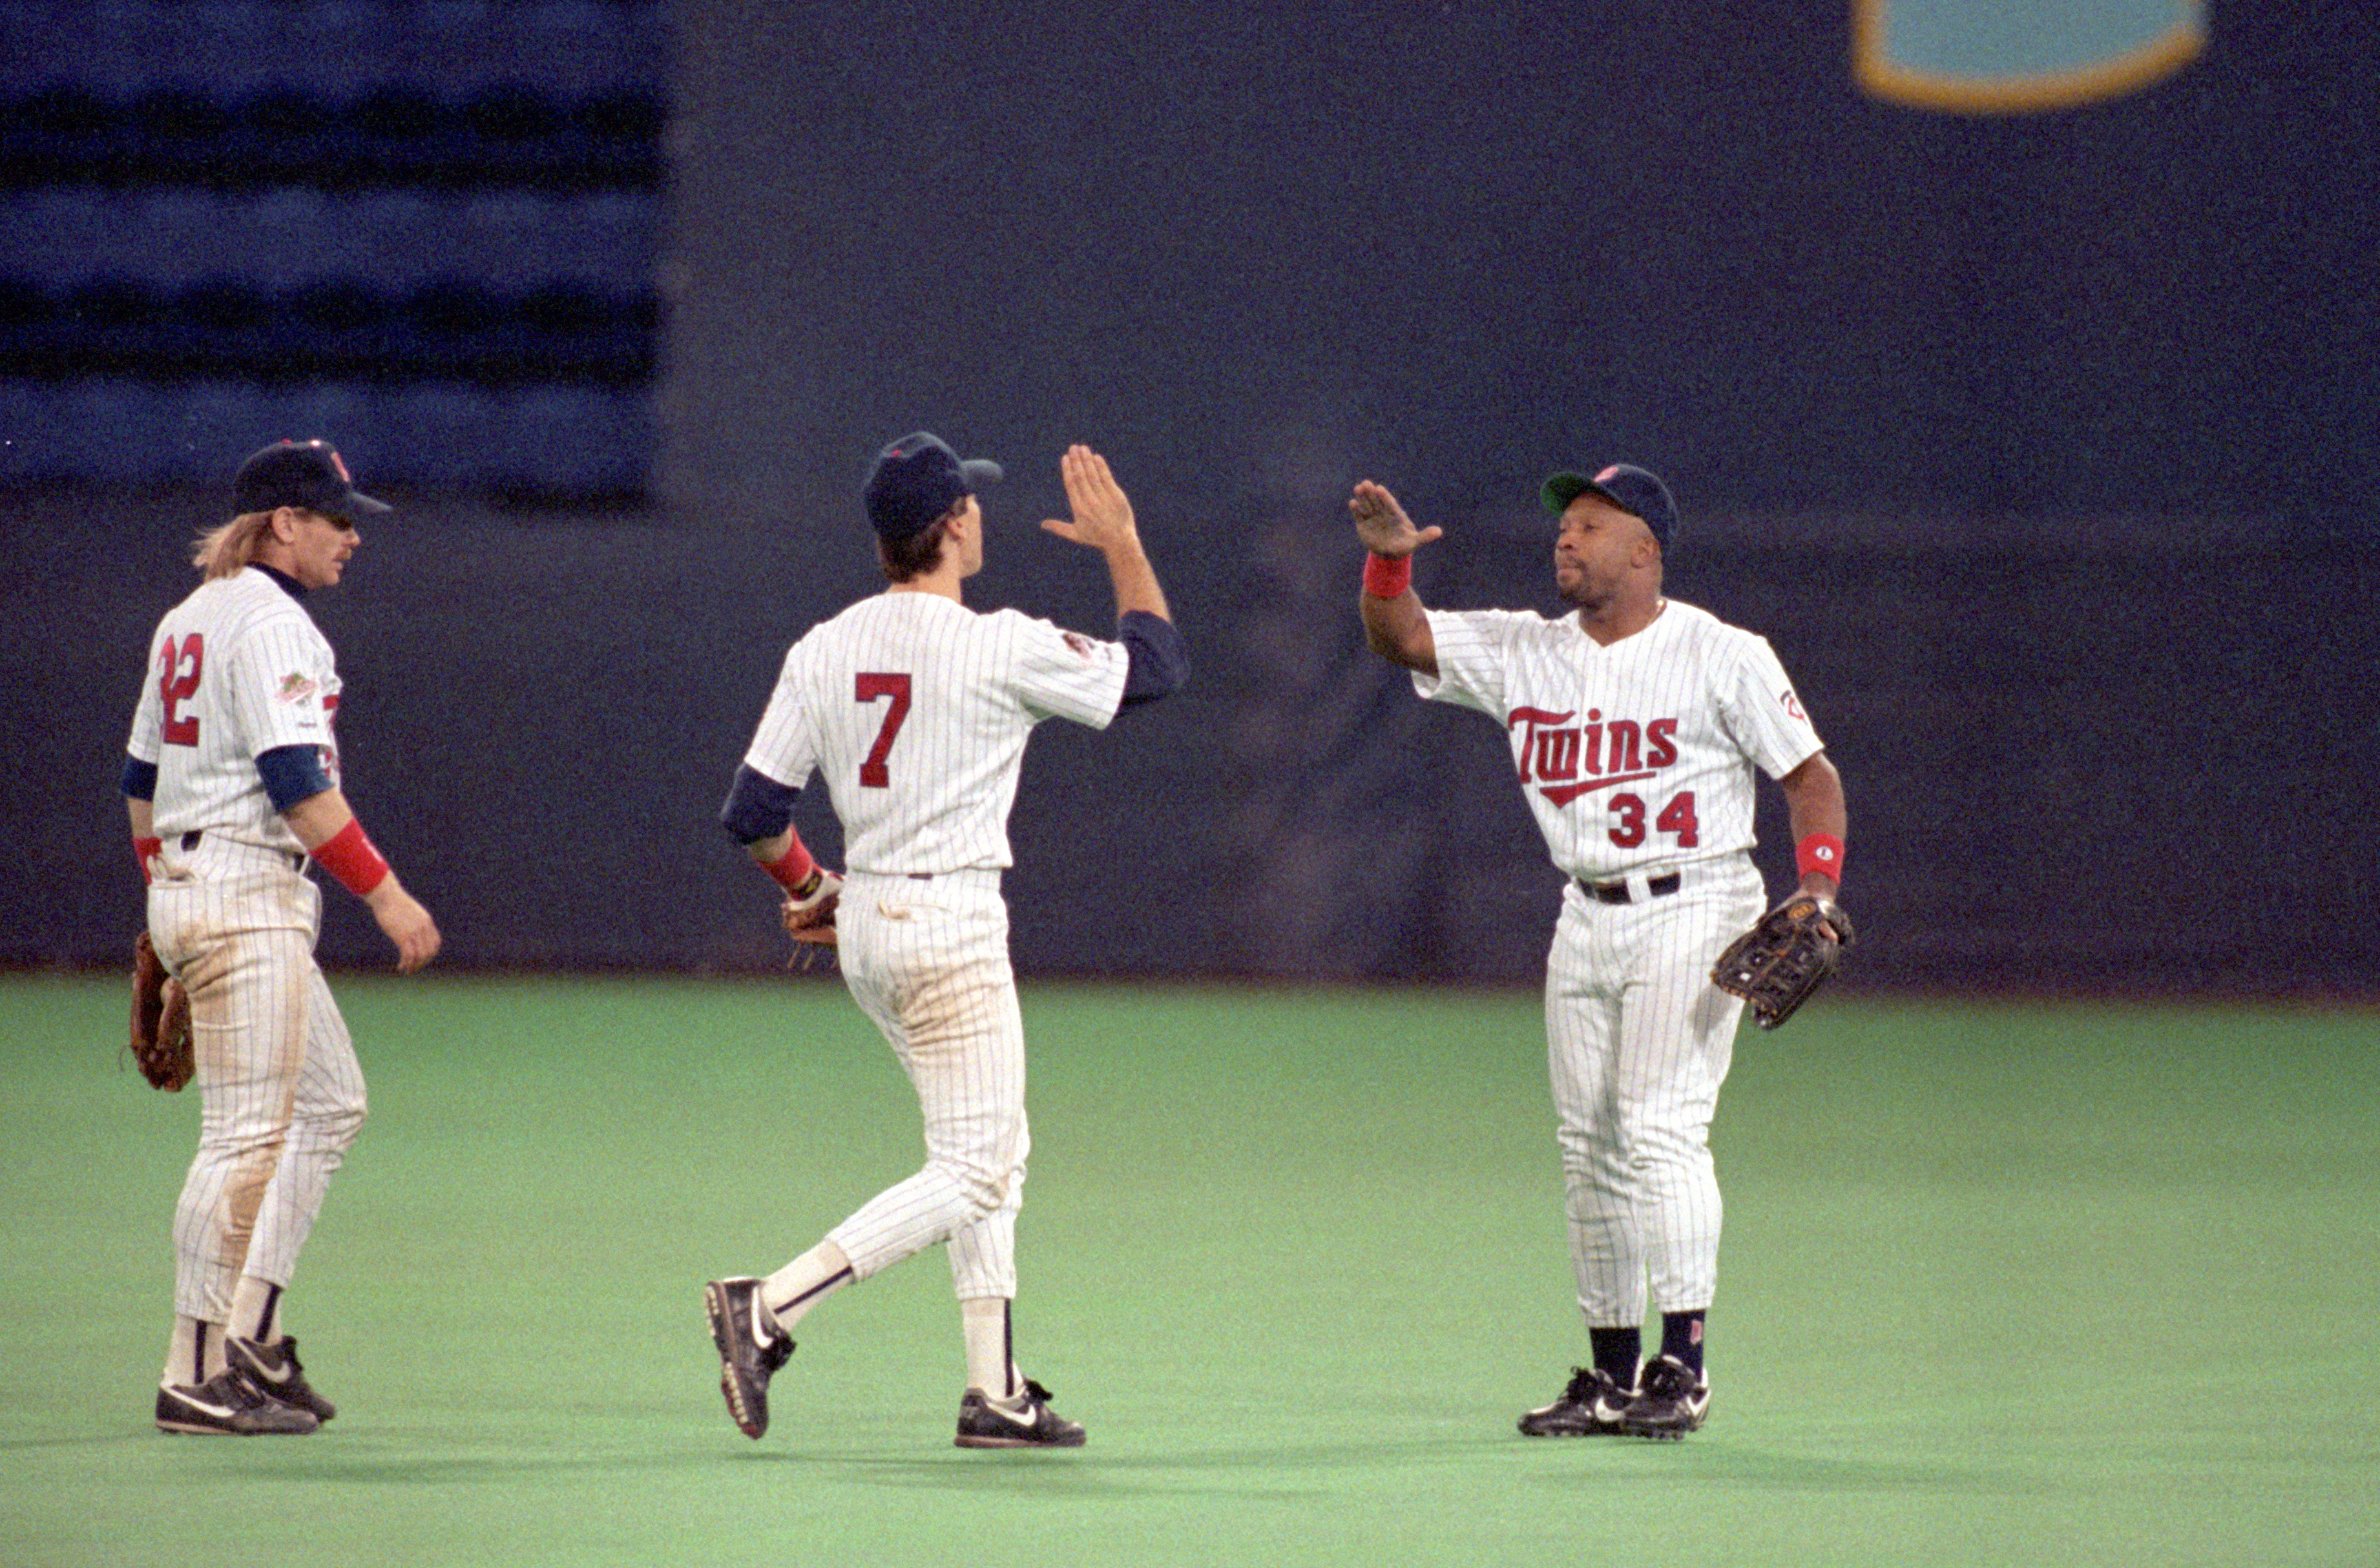 Dan Gladded played along side Kirby Puckett from 1987 to 1991.